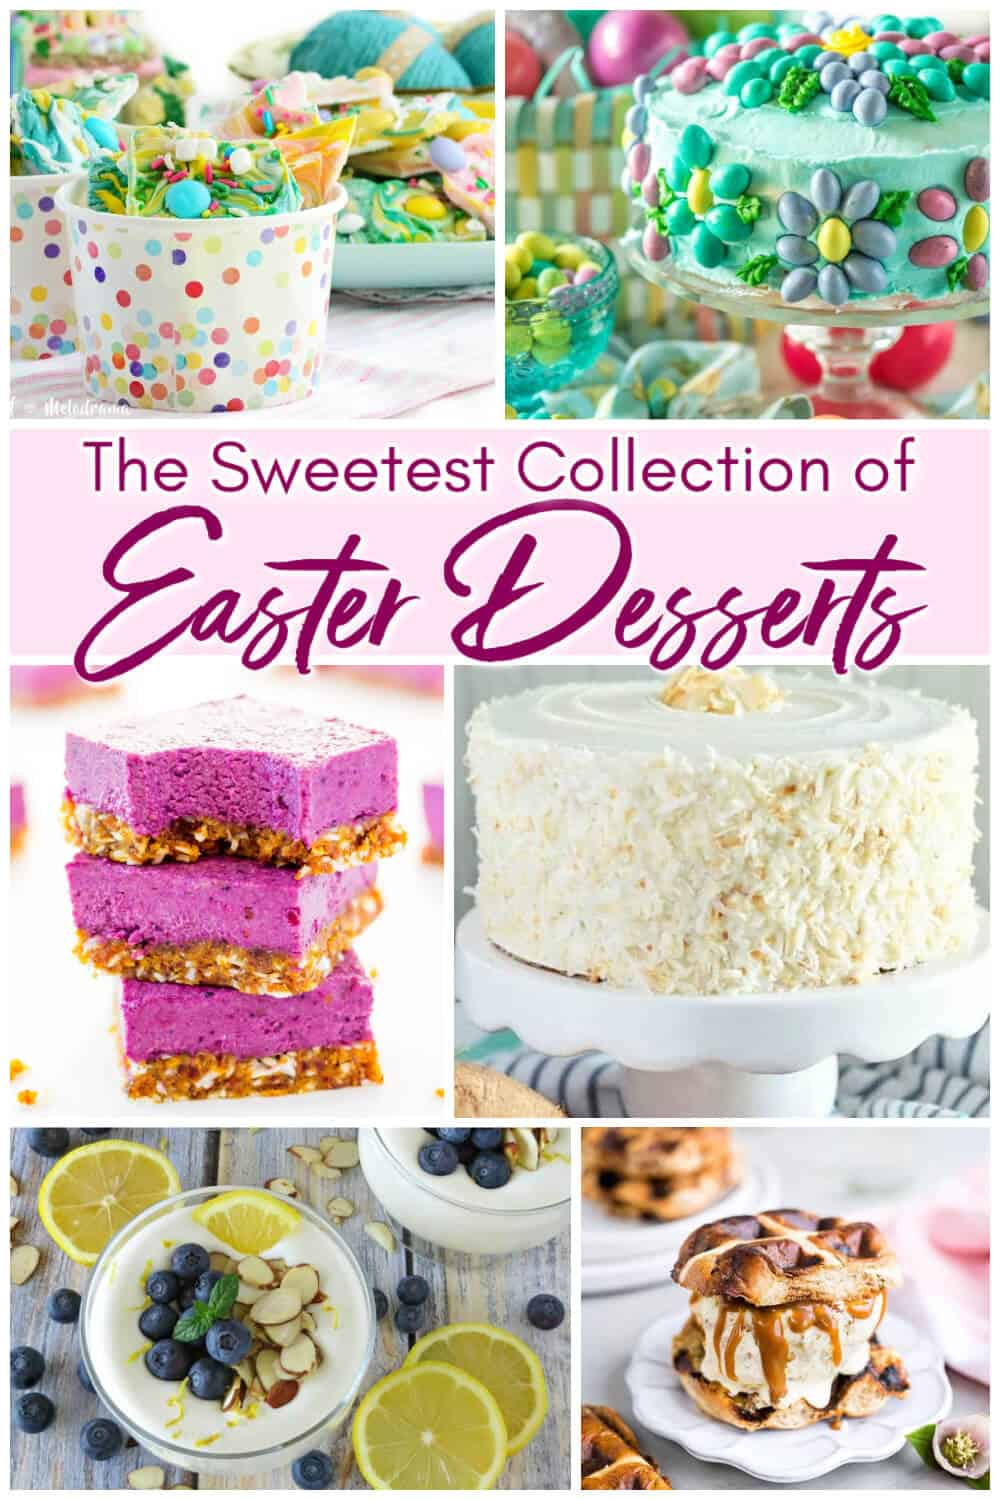 The Sweetest Collection of Easter Desserts